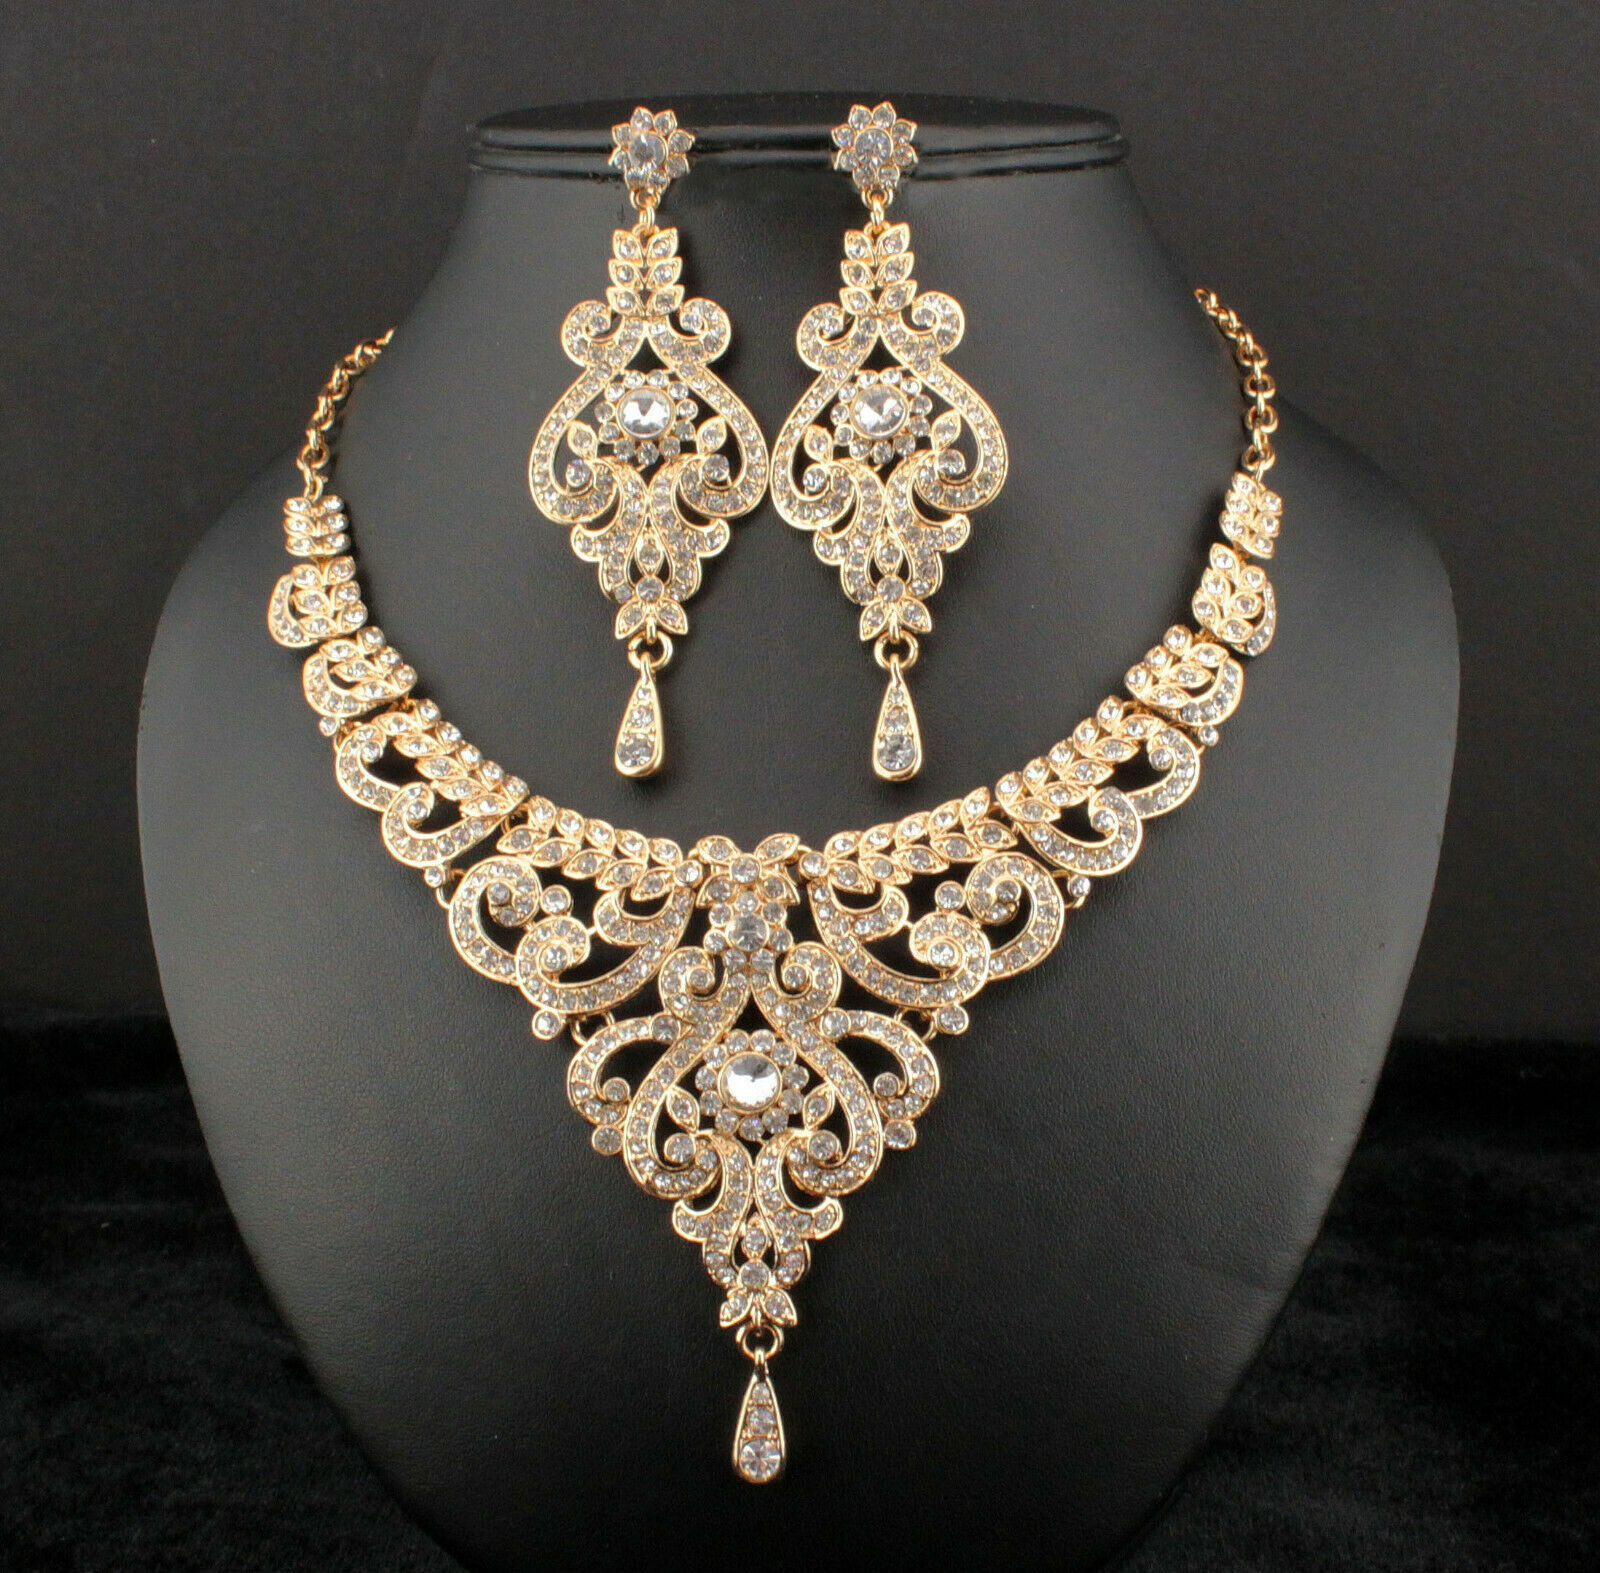 Sale! New Art Deco Vintage Gold Austrian Rhinestone Crystal Necklace Earrings Set